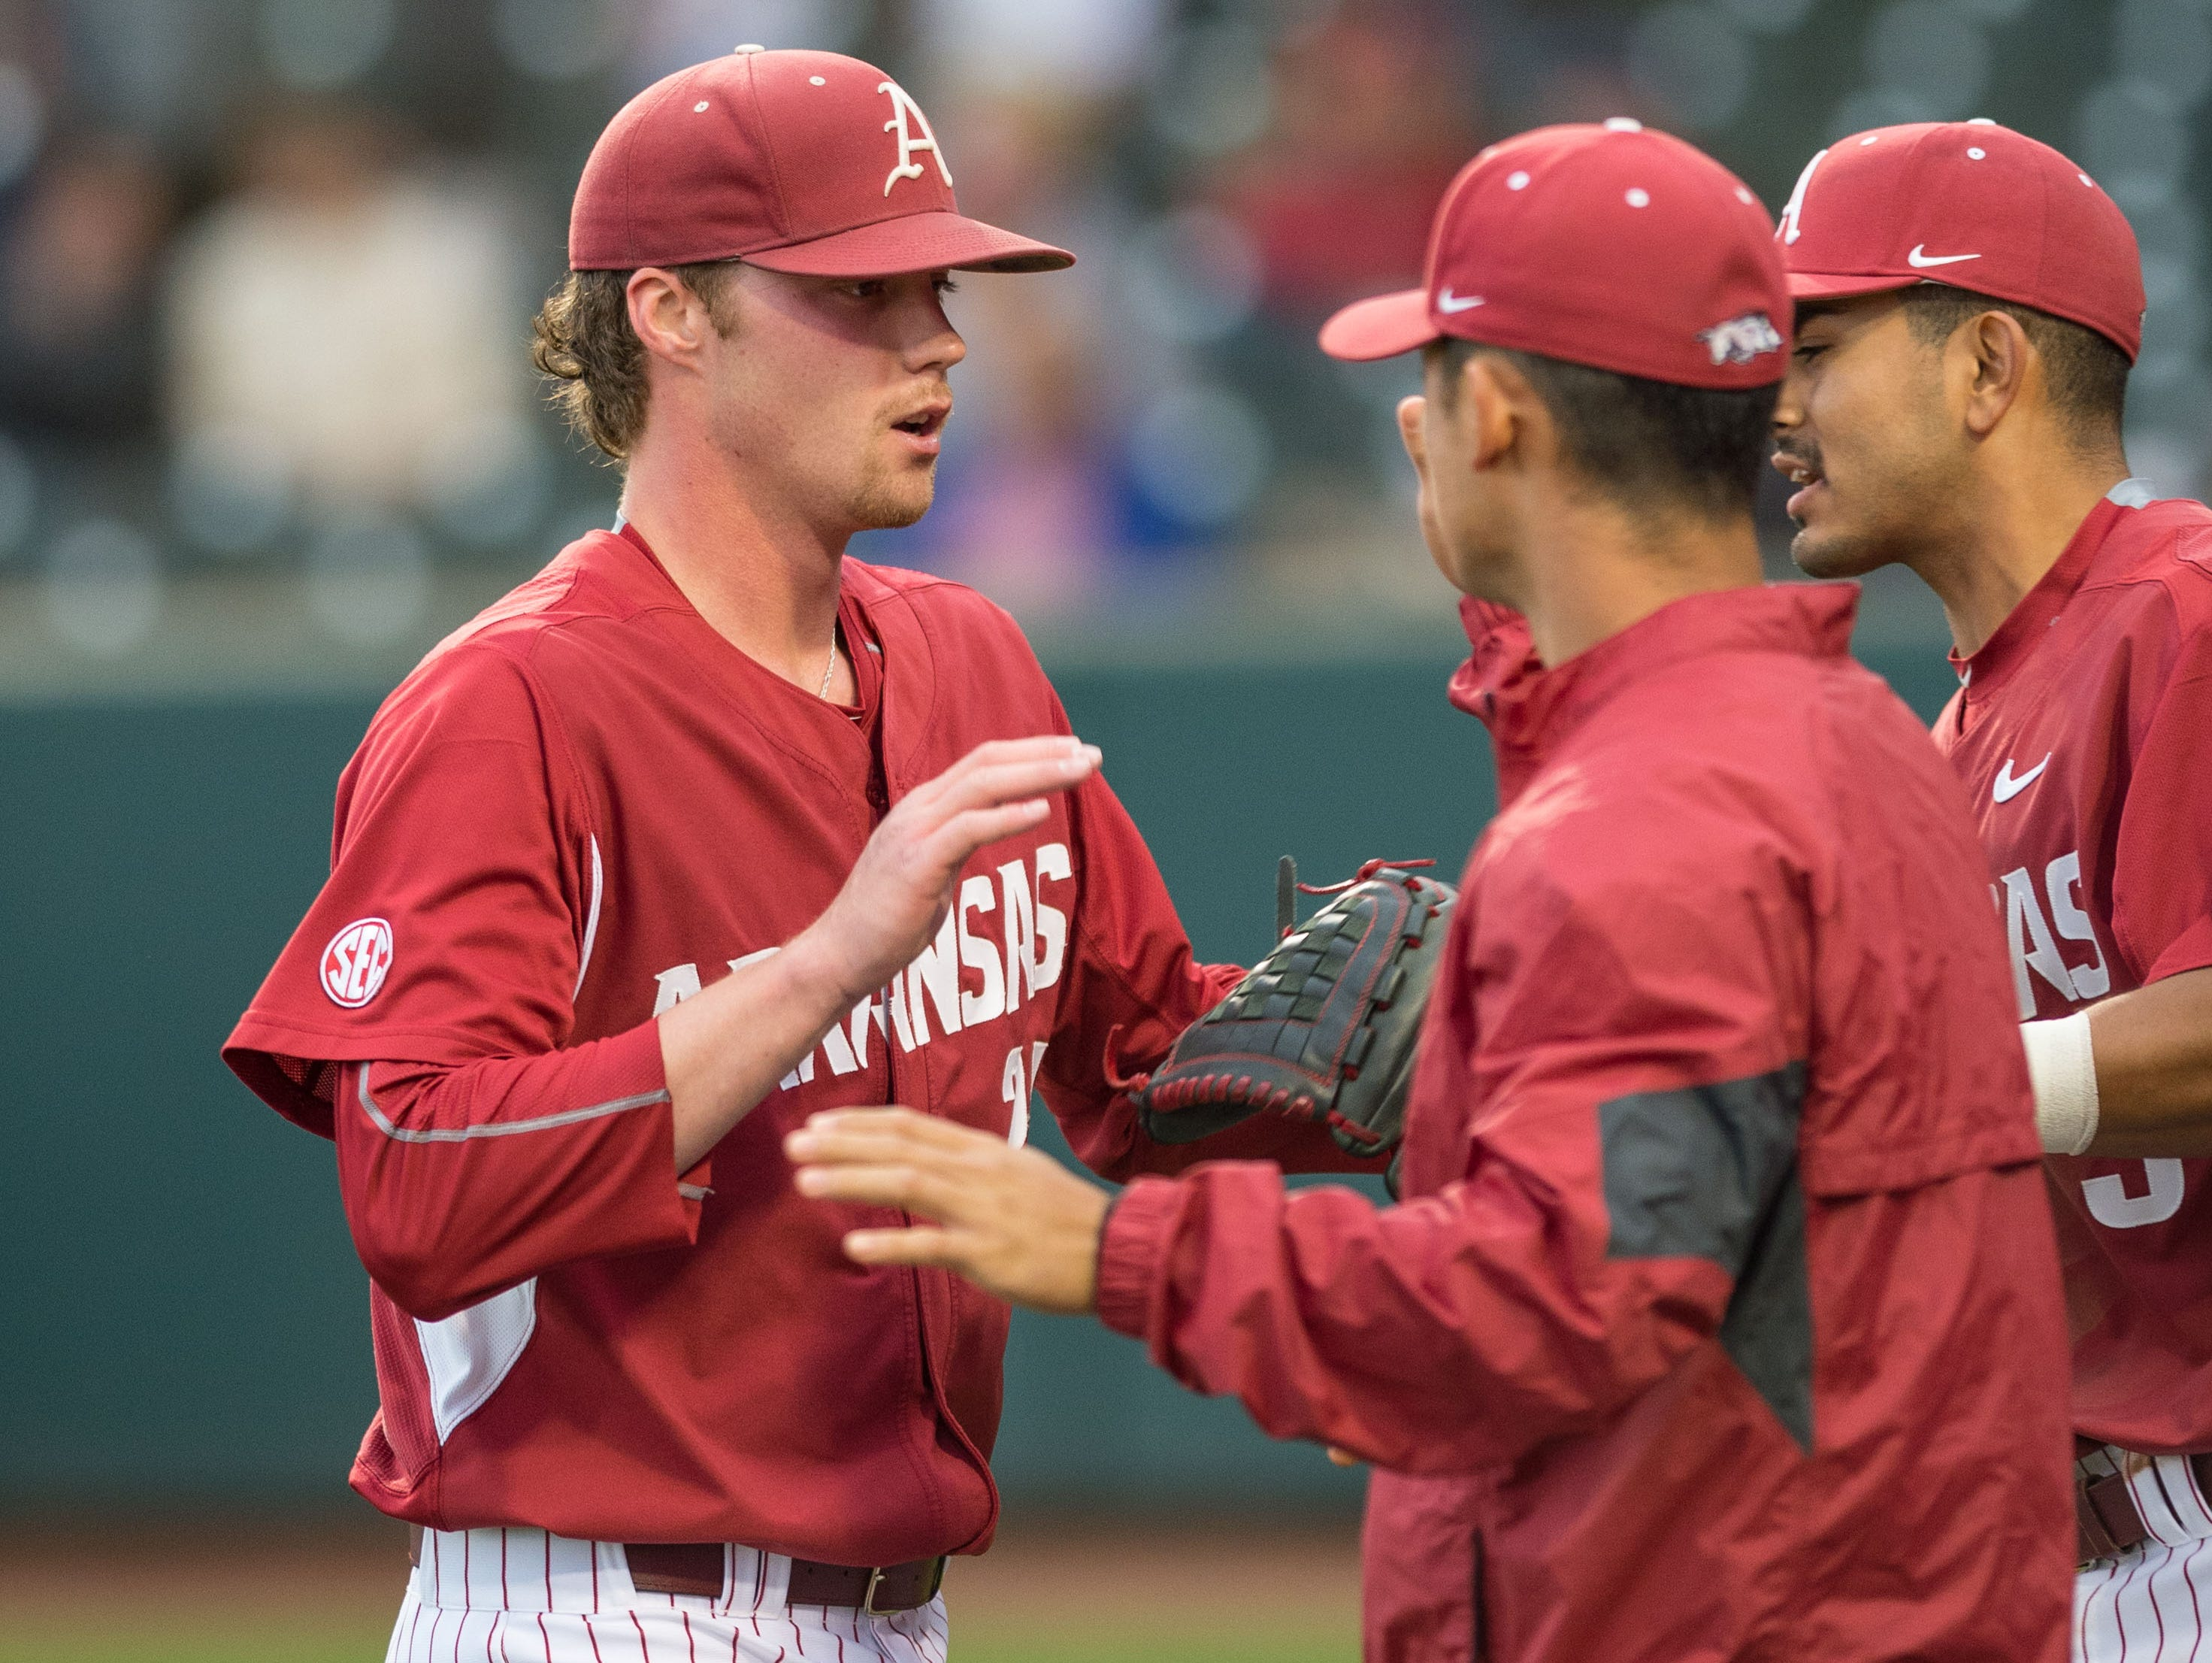 Arkansas' Trey Killian, left, is greeted by teammates after pitching against Mississippi State on Friday night at Baum Stadium in Fayetteville.